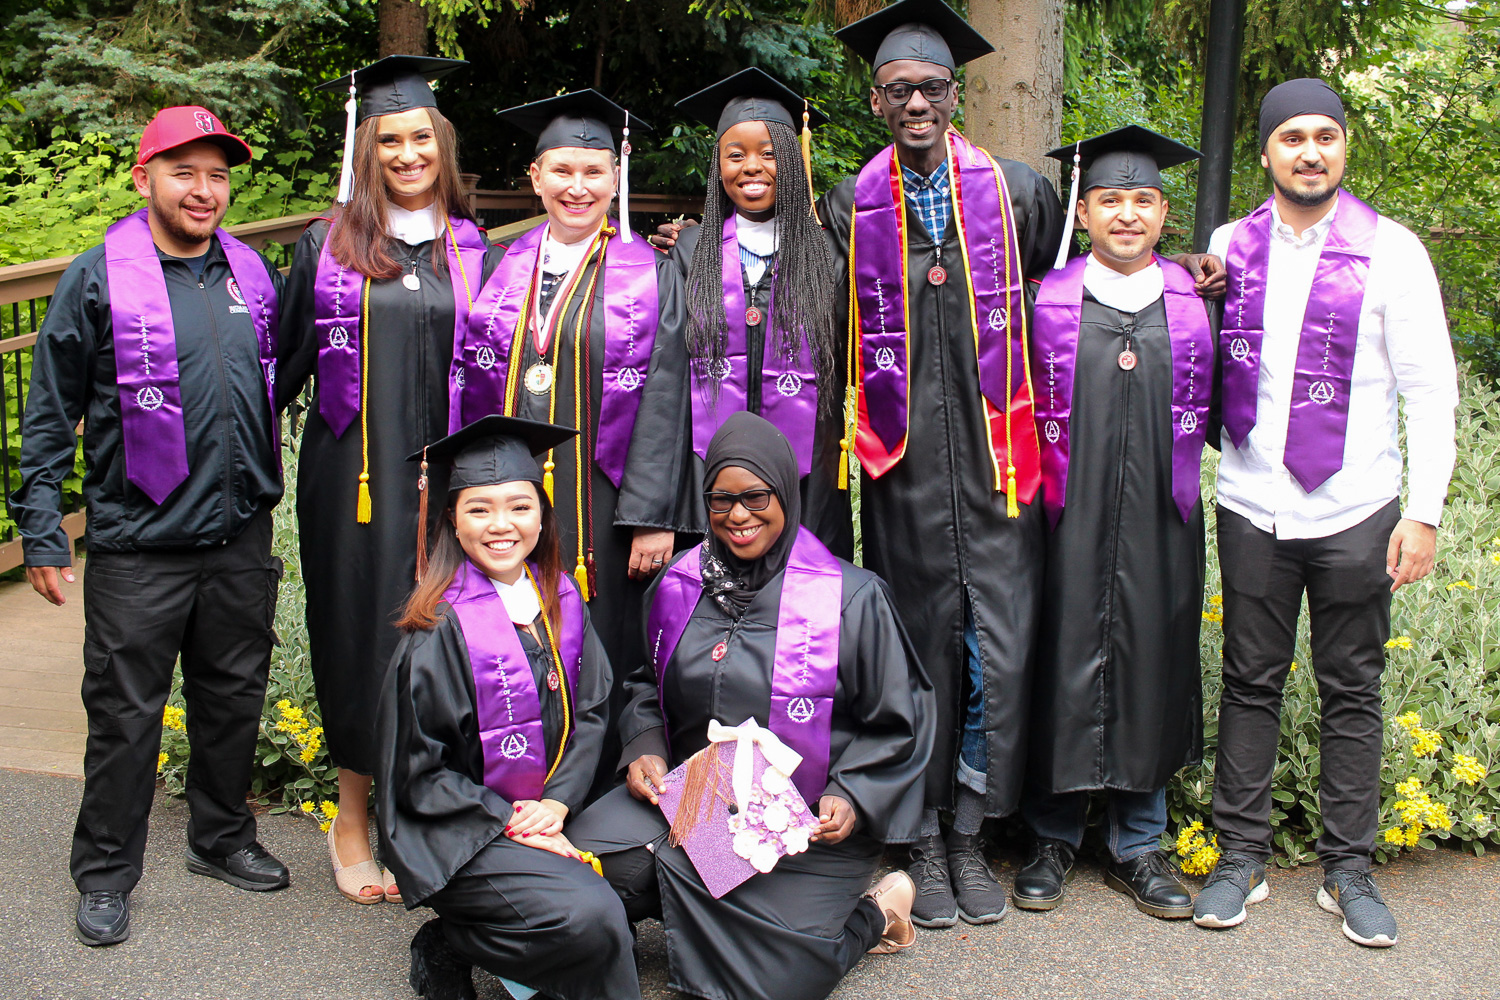 The Alfie Scholars Program cultivates leaders for civility, provides financial aid, and supports academic excellence. -